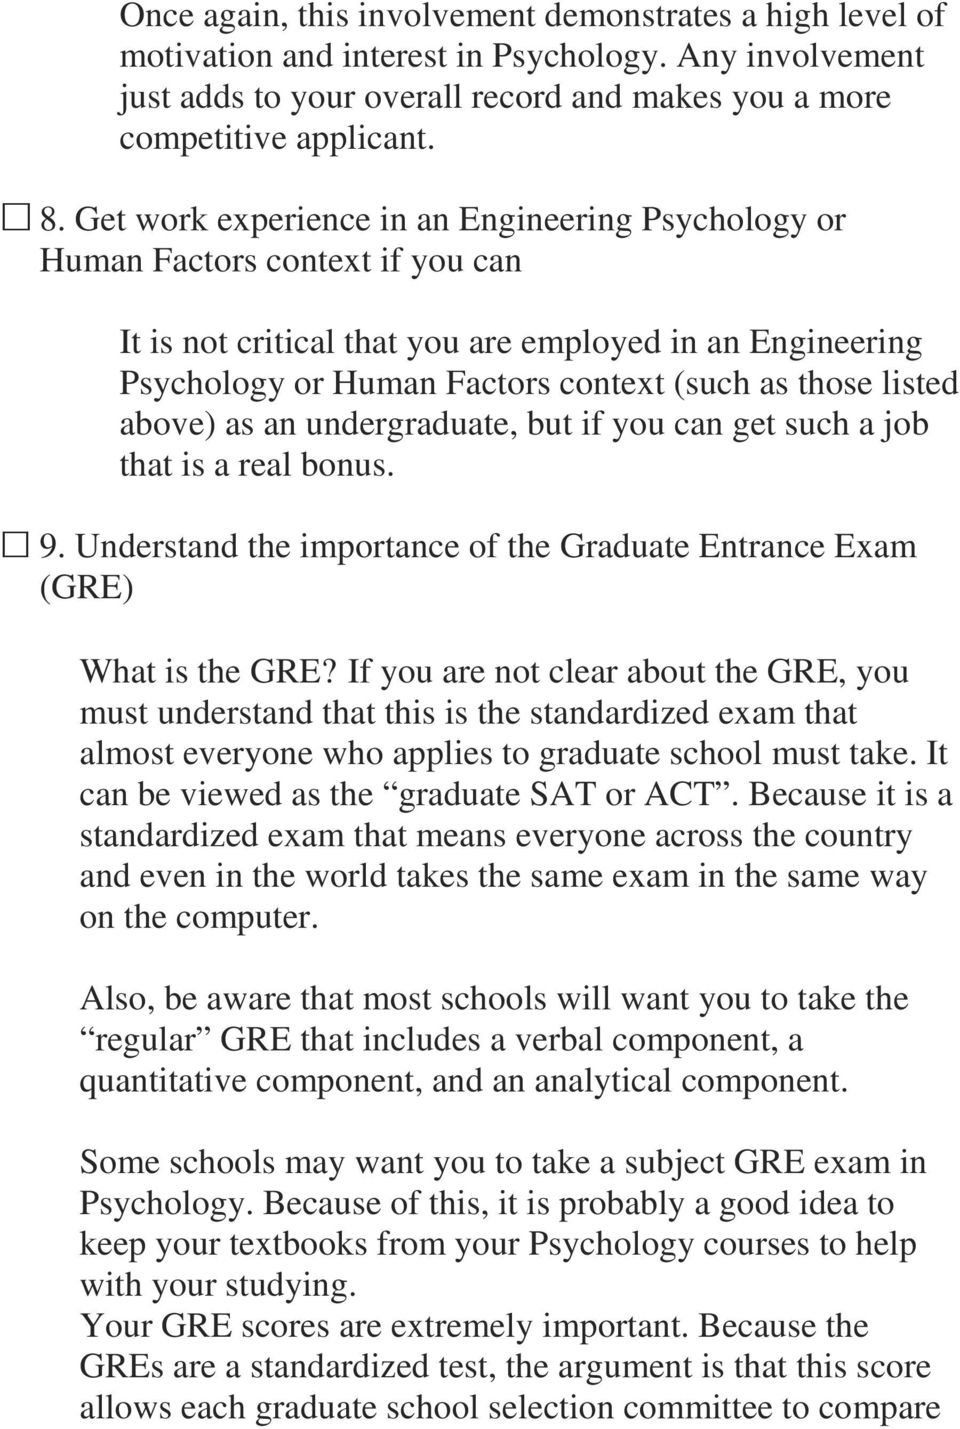 listed above) as an undergraduate, but if you can get such a job that is a real bonus. 9. Understand the importance of the Graduate Entrance Exam (GRE) What is the GRE?